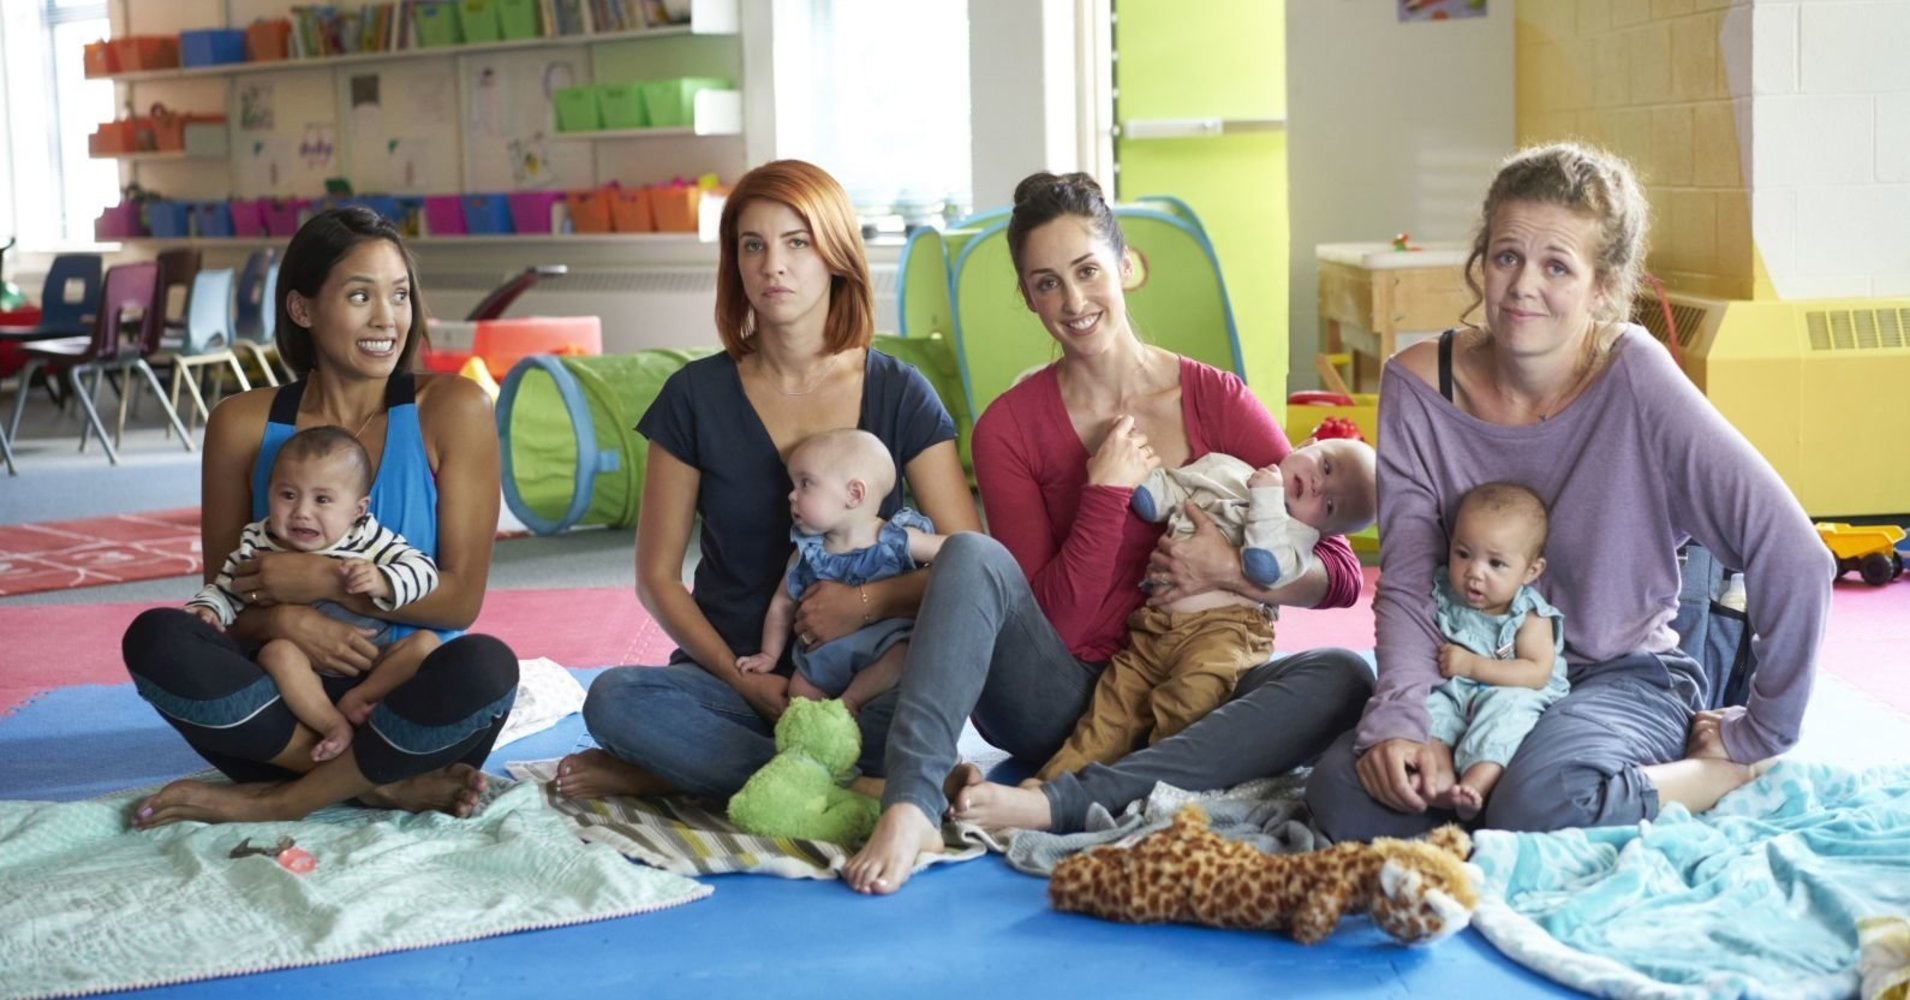 'Workin' Moms' Will Give You, And Your Saggy Postpartum Boobs, A Lift